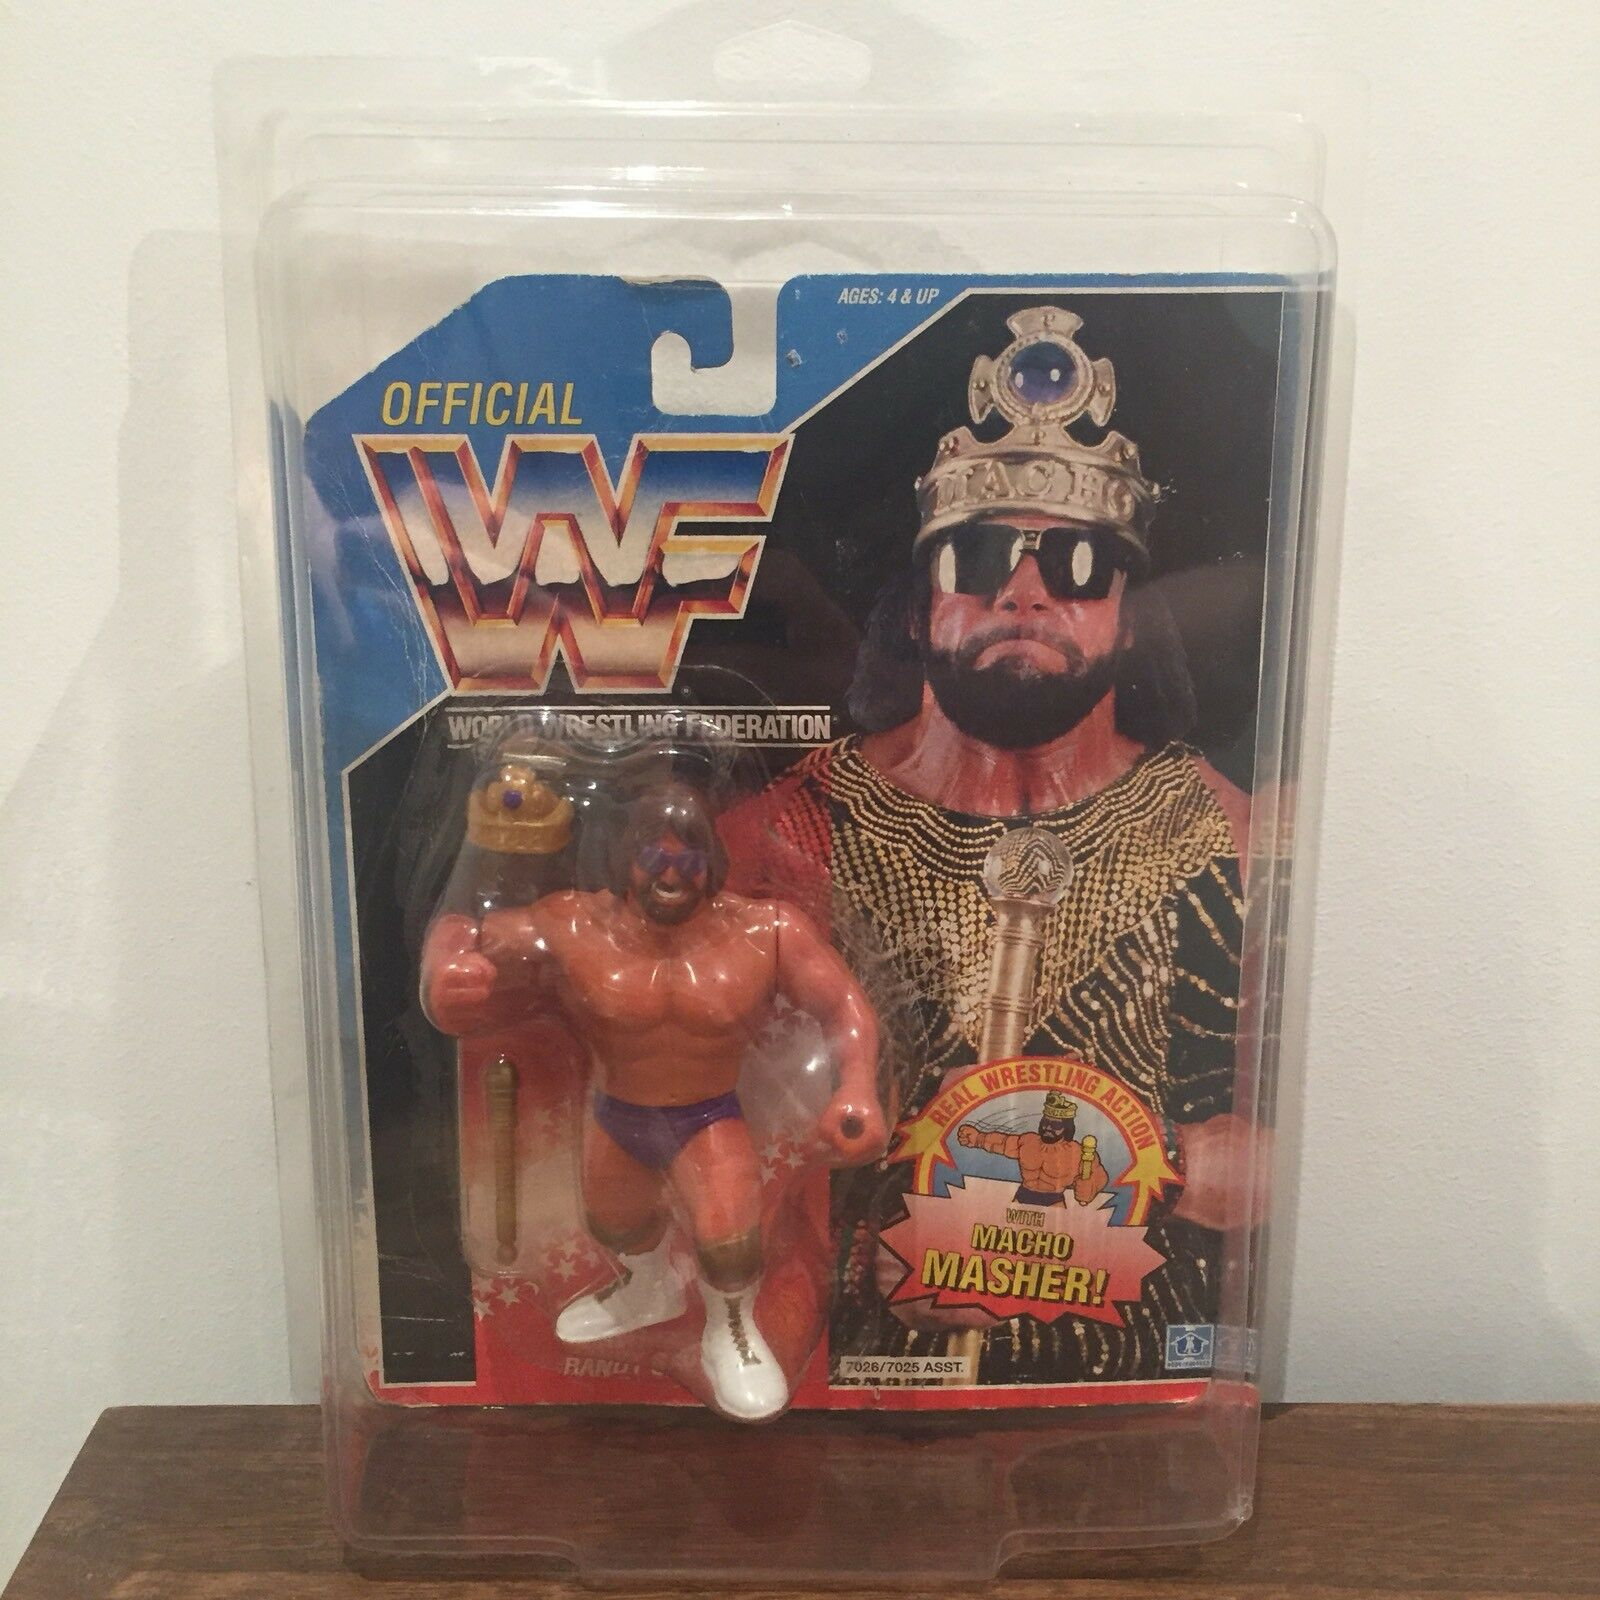 WWF/WWE 'Macho King' Randy Savage Hasbro Action Figure 1991 Series 2 with case